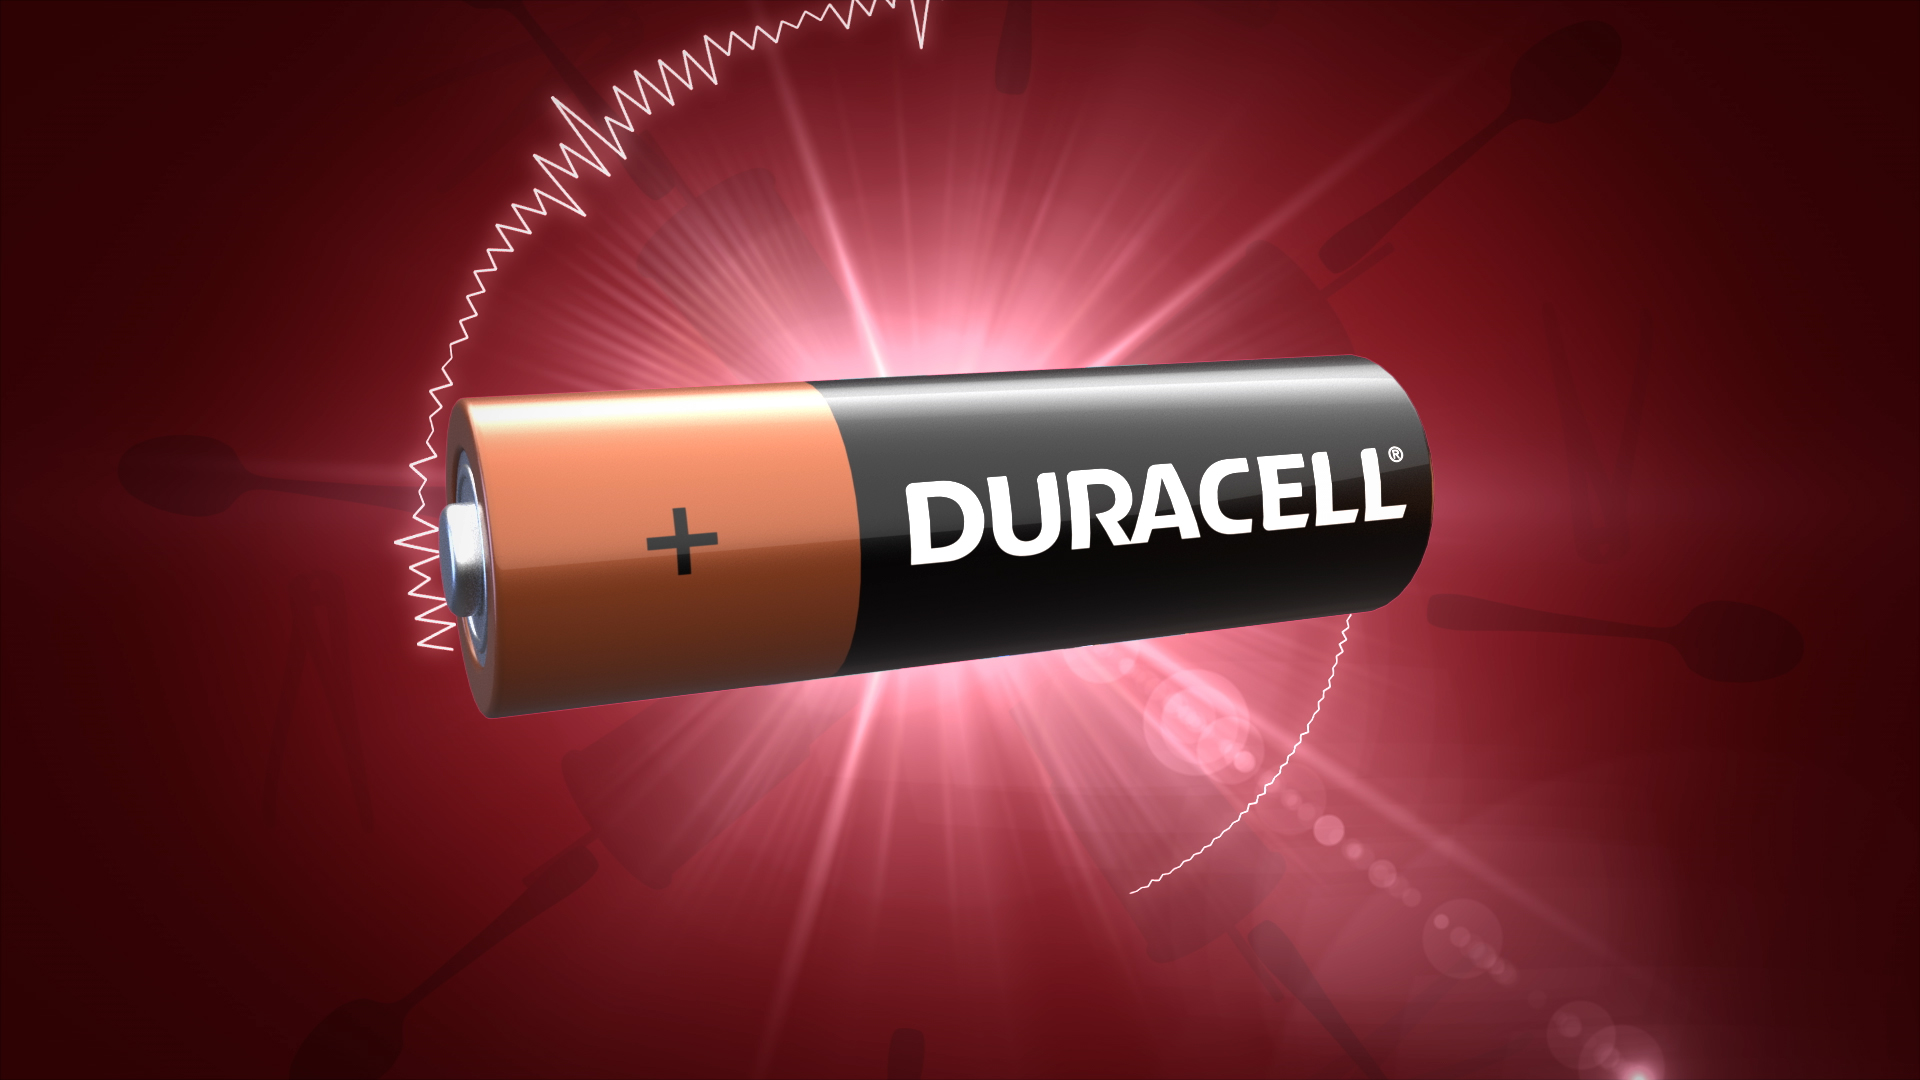 Duracell   Things You Can Always Trust Scott Pellman   Motion 1920x1080